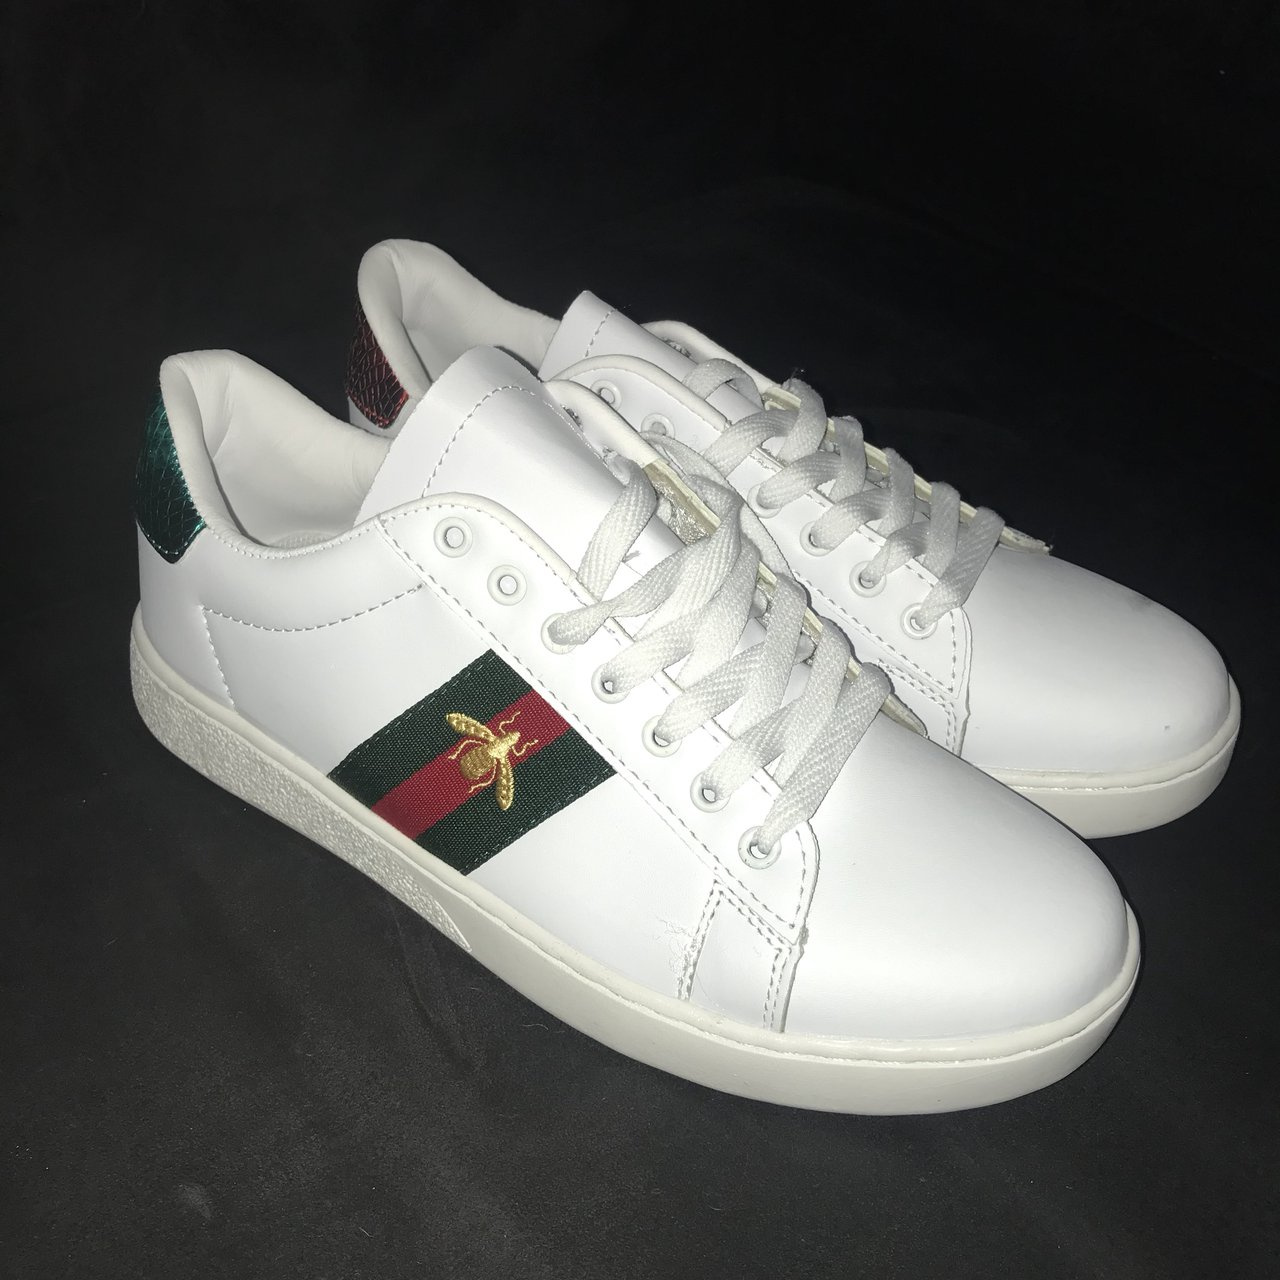 3f7031dea13 Selling these fake Gucci trainers. They are in amazing and - Depop